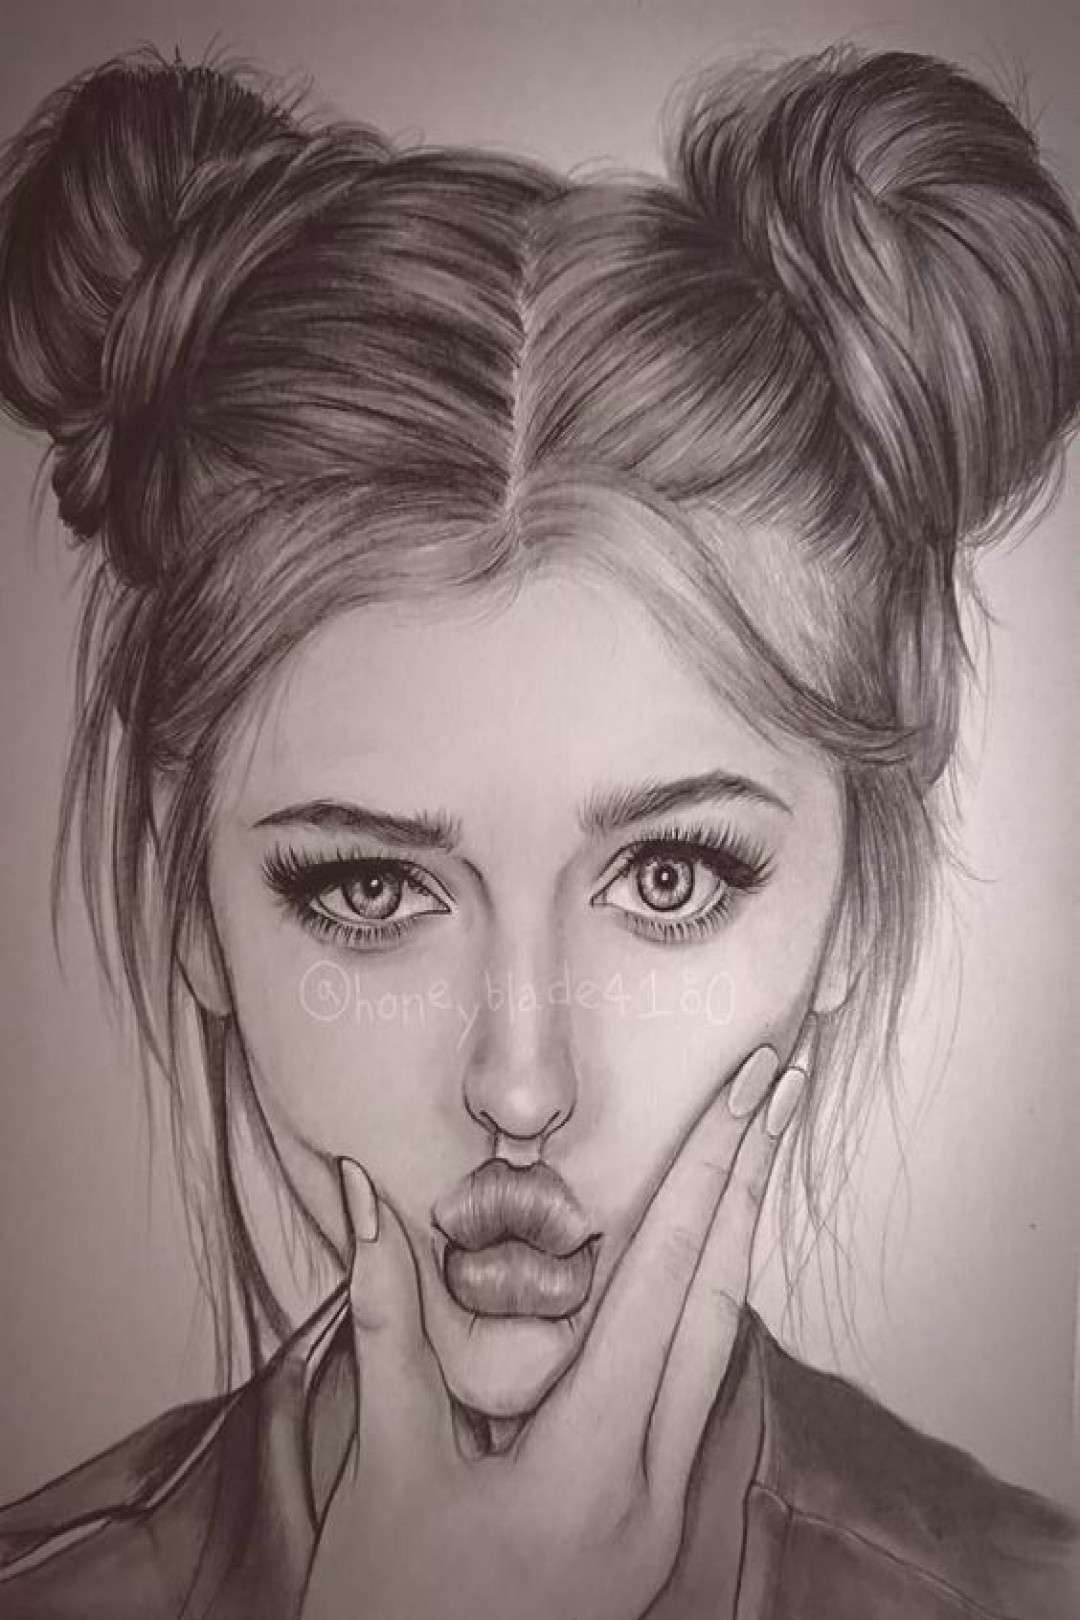 super easy drawing course - portrait designer check out the link in the picture ... super easy draw